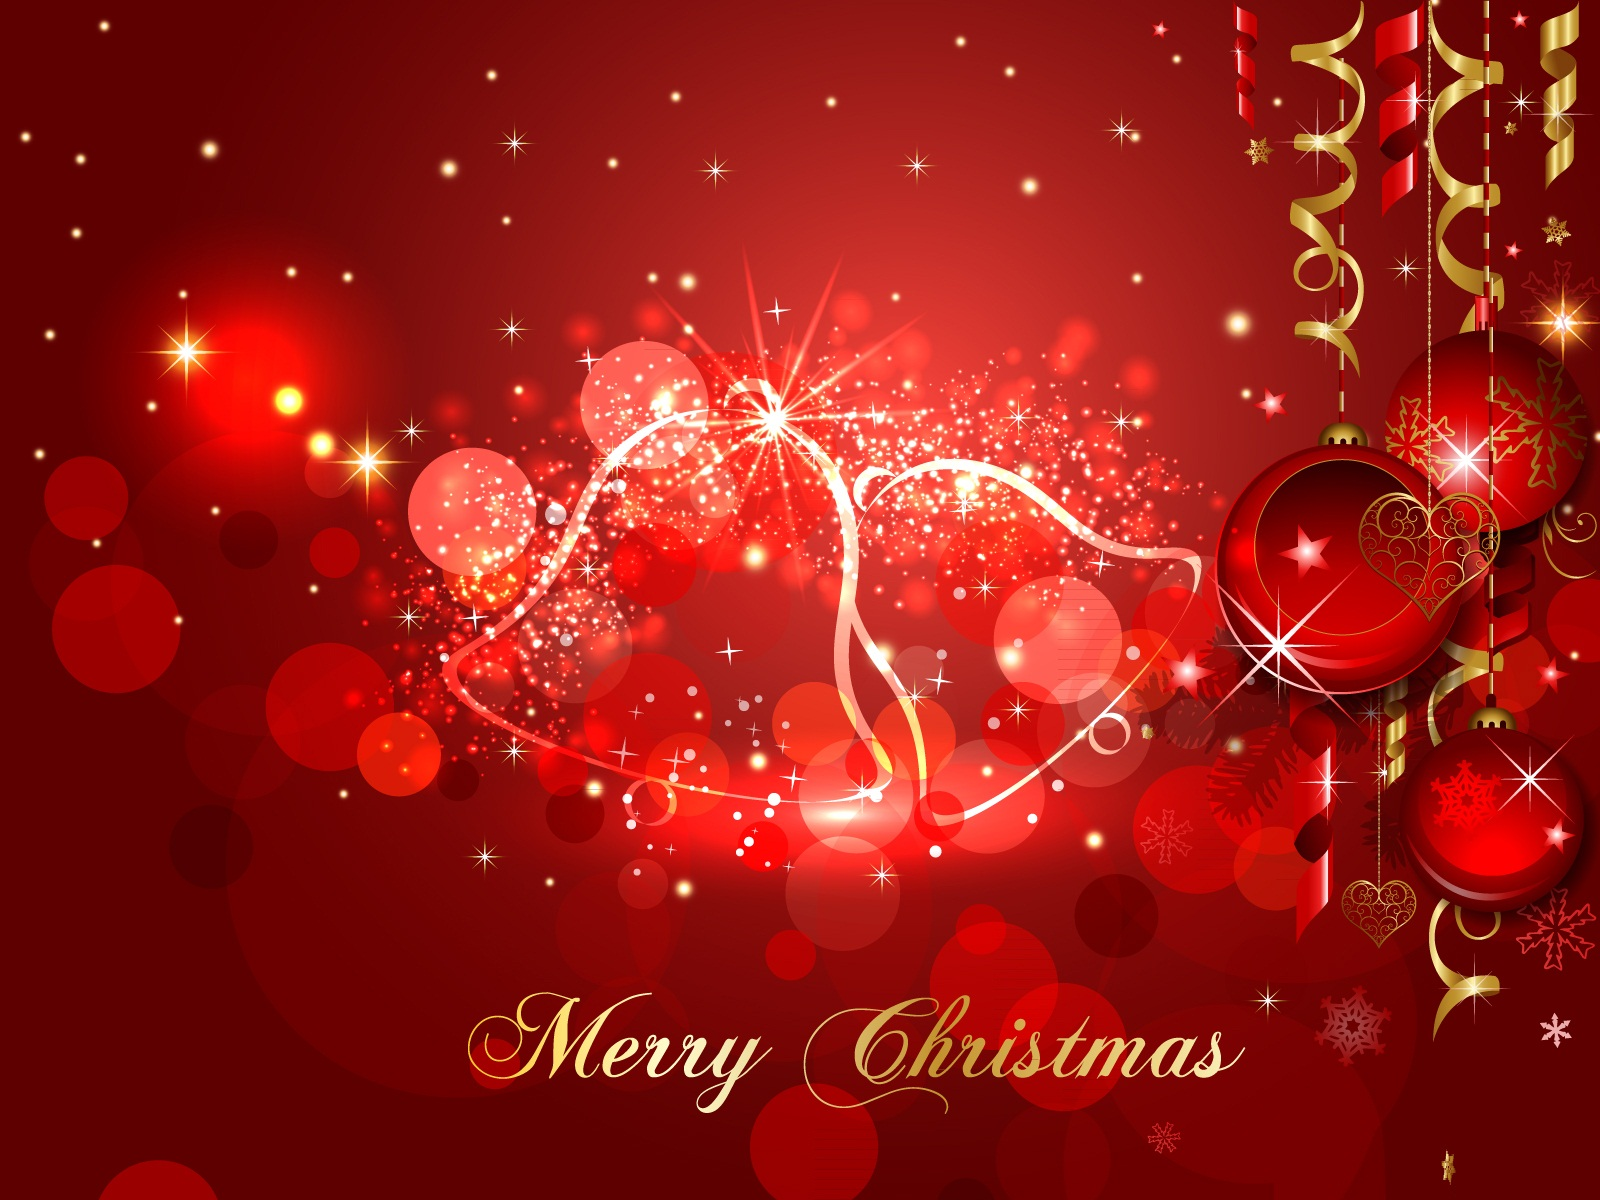 Merry Christmas 2020 Quotes images